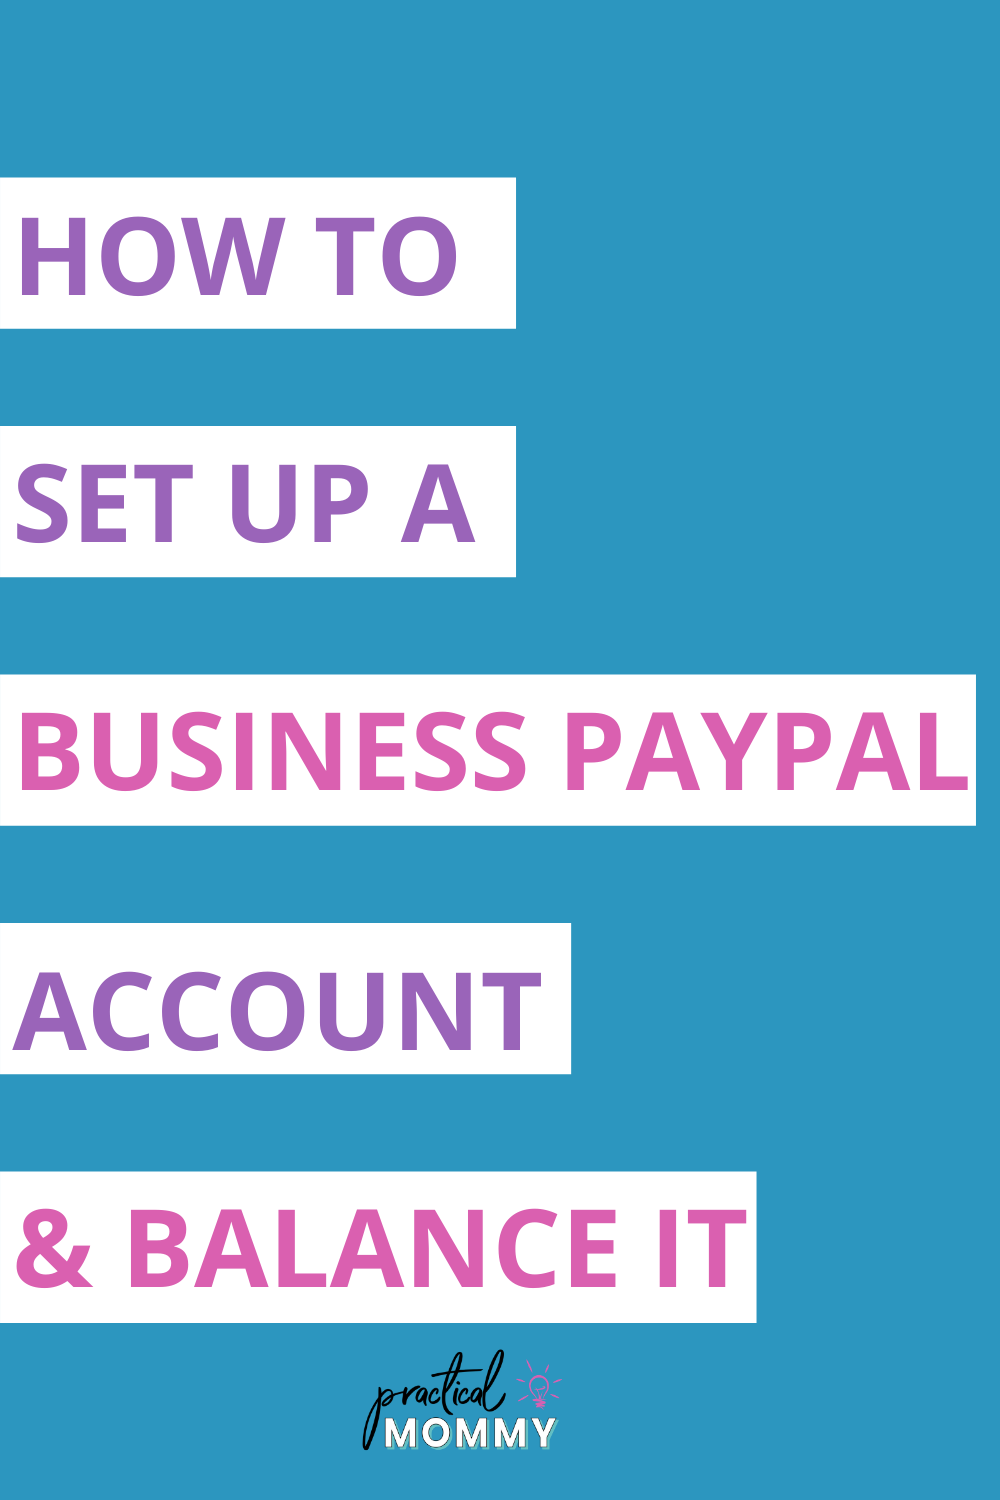 How To Set Up A Business PayPal Account And Balance It! in